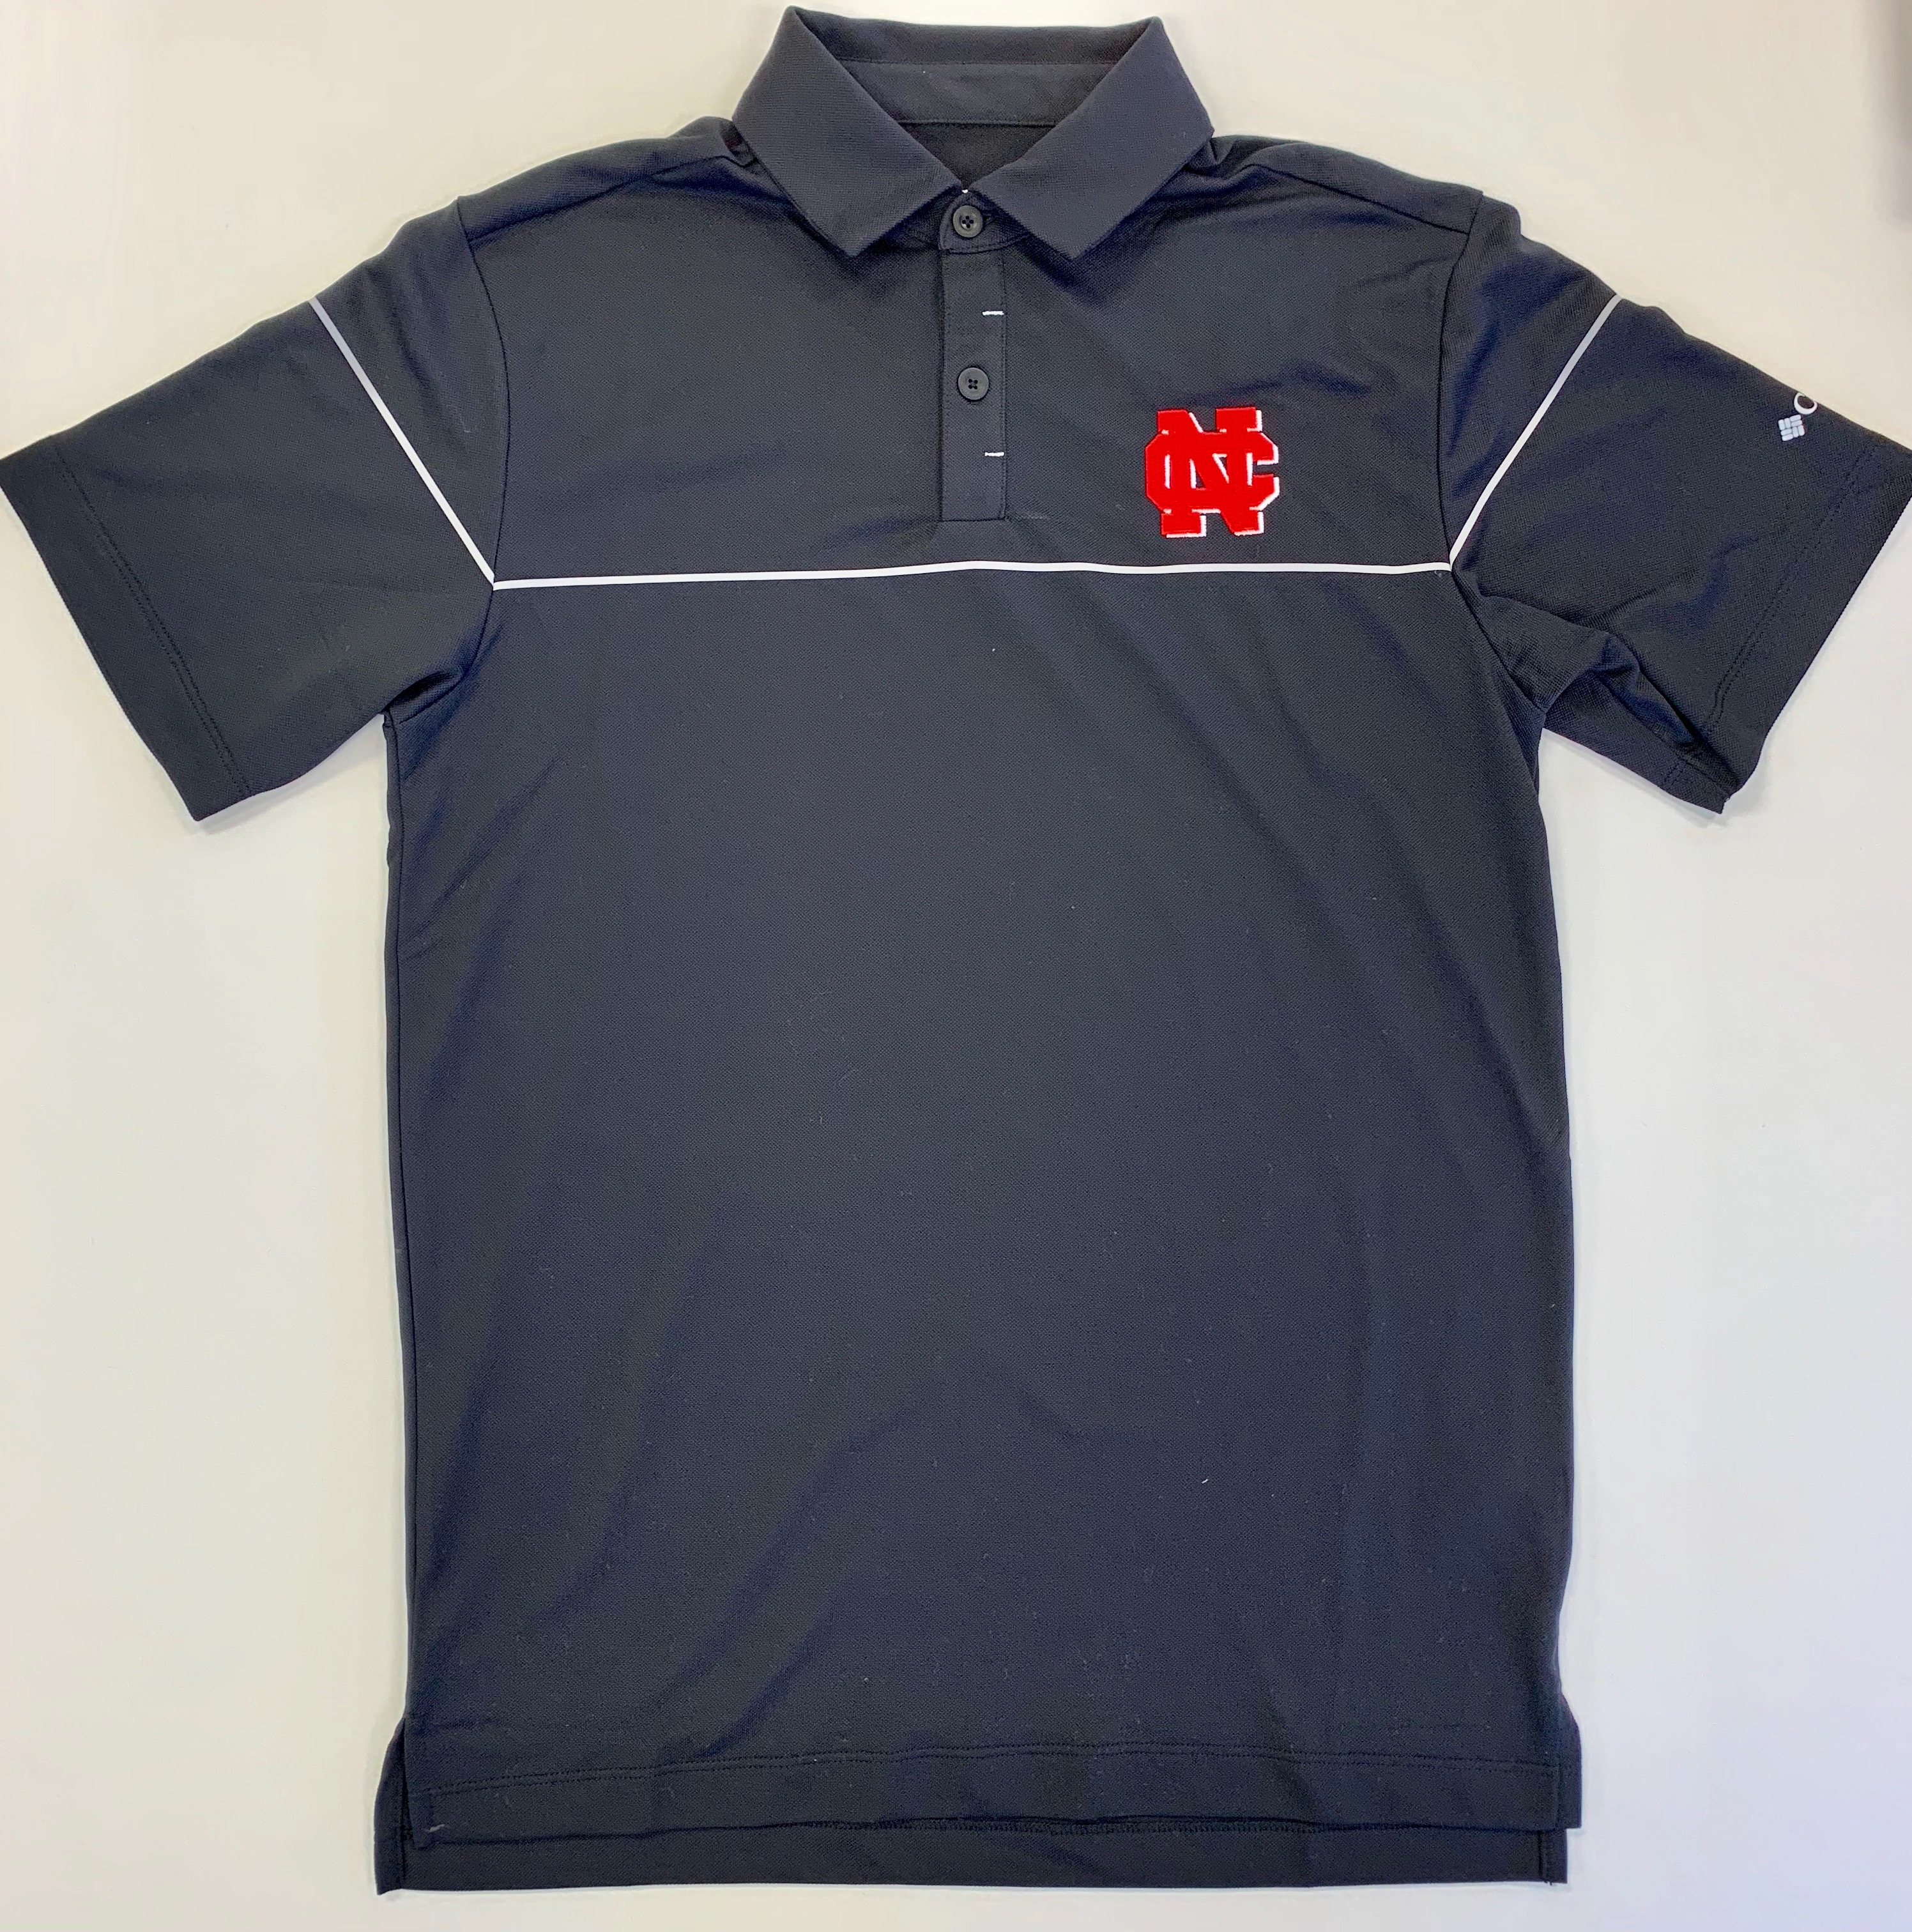 Image for the Omni-Wick Breaker Polo product